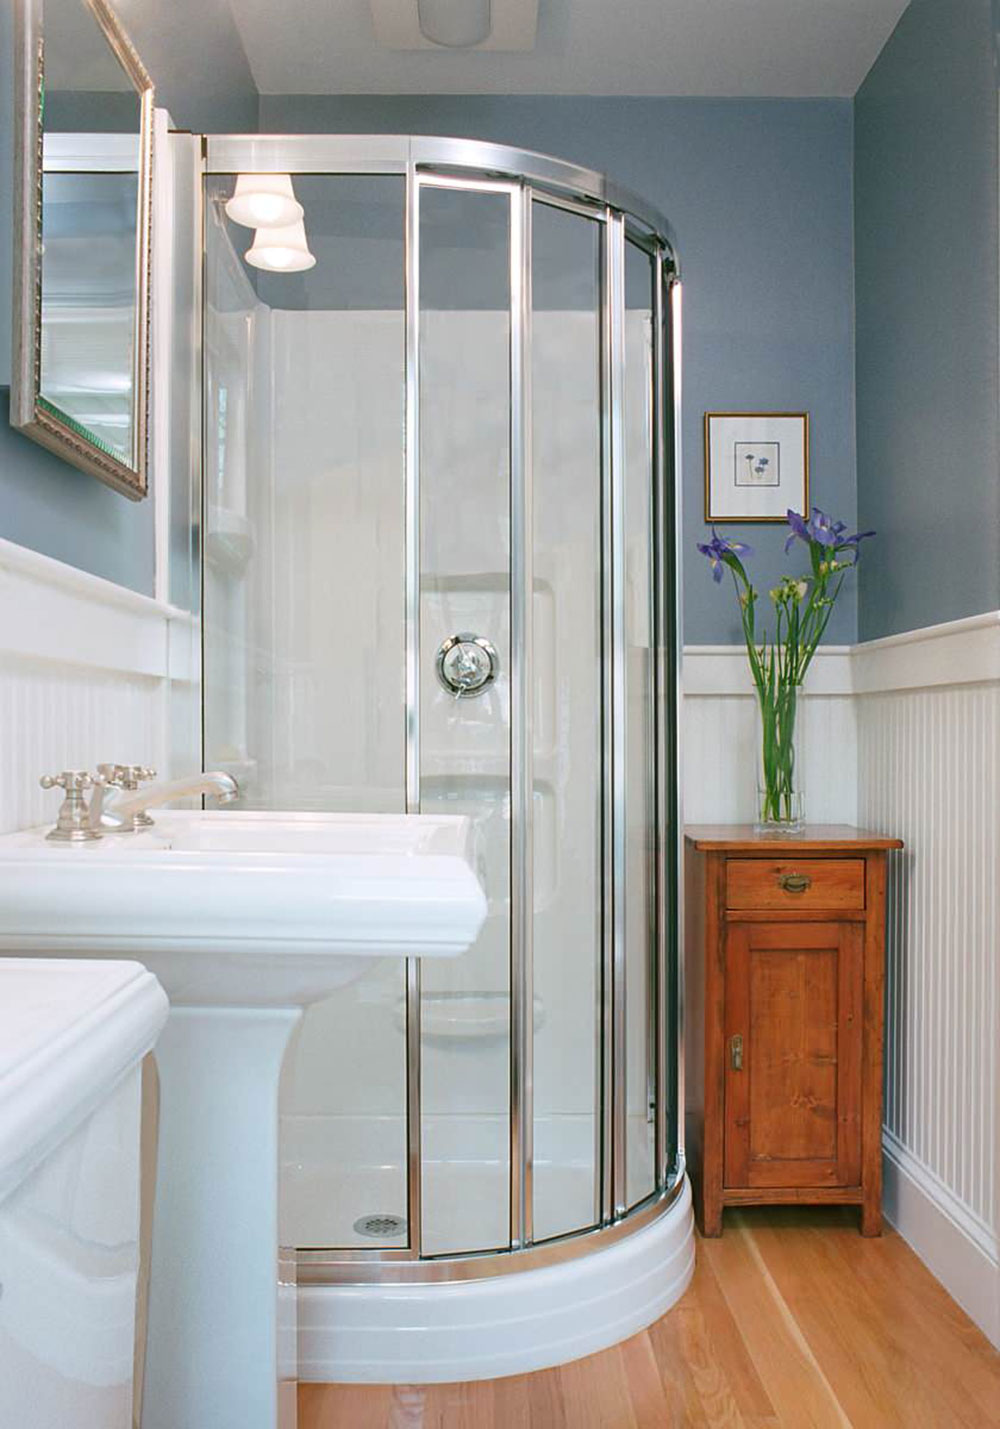 how to make a small bathroom look bigger tips and ideas how to make a small bathroom look bigger1 how